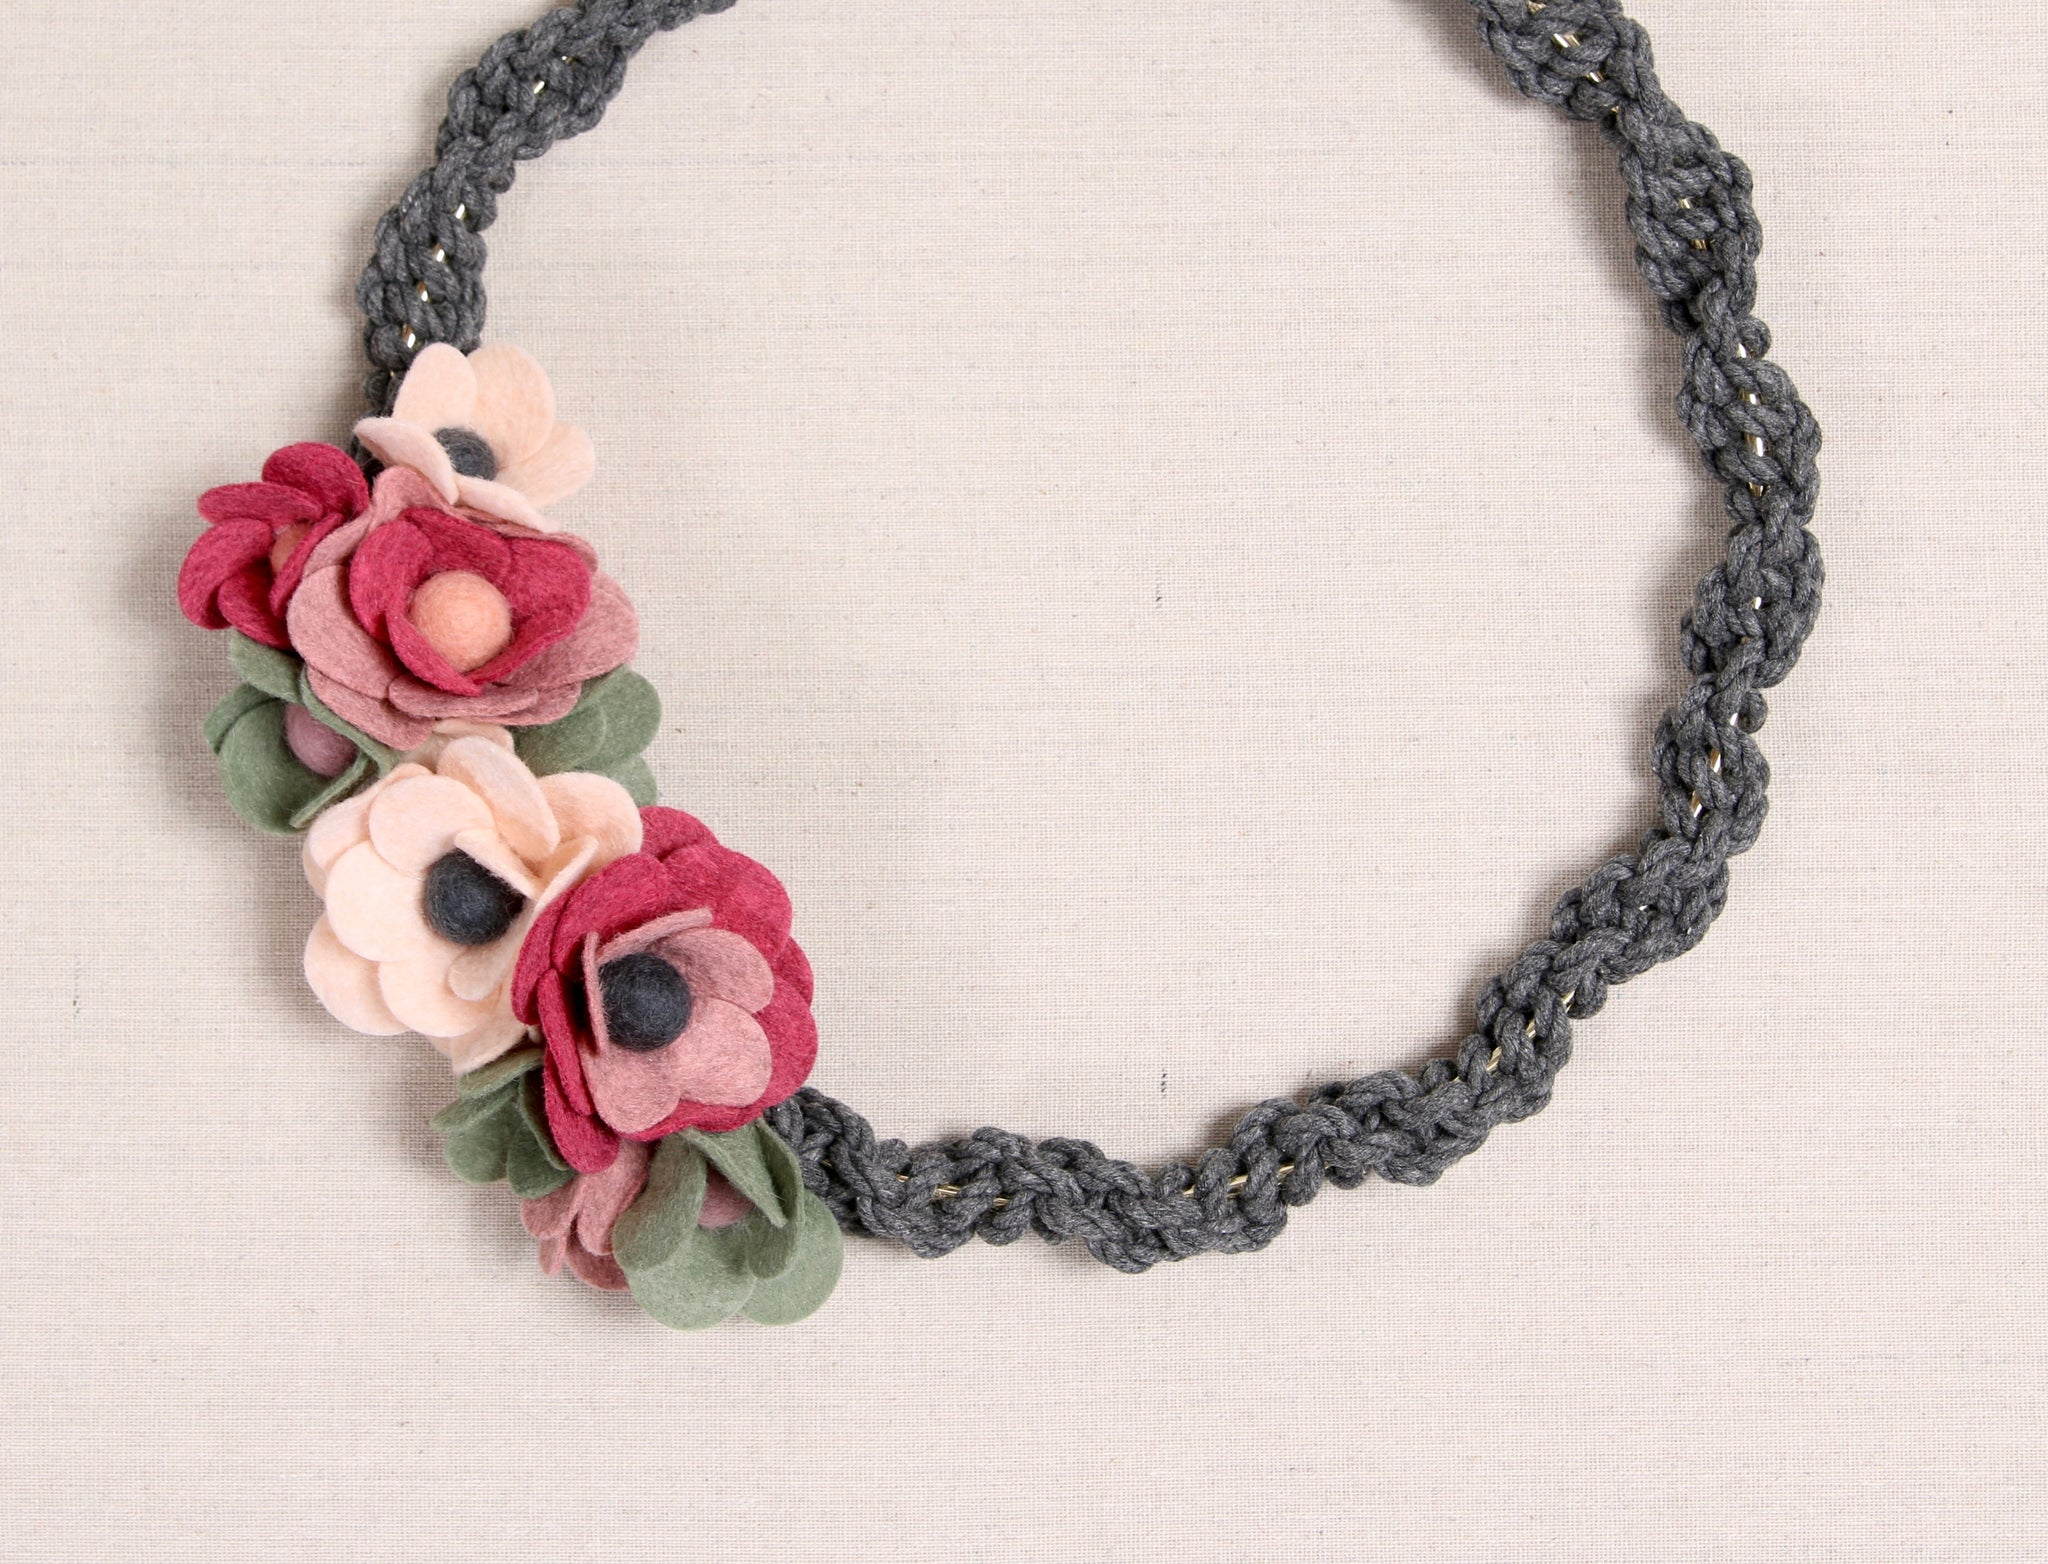 Flower and Macrame Wreath